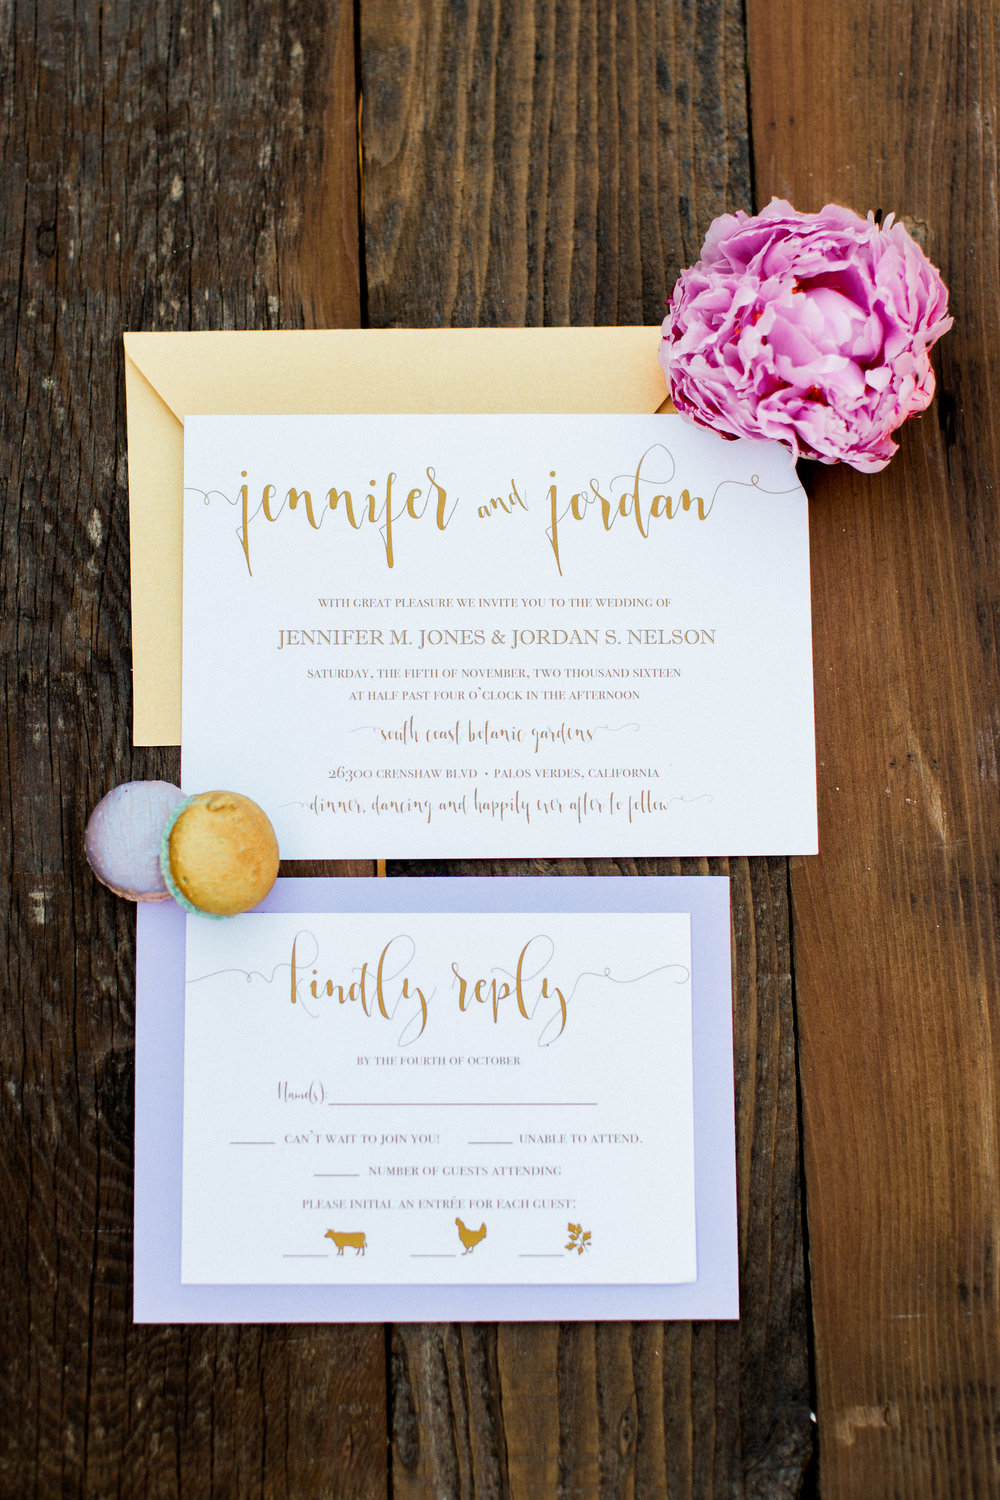 Lavender Wedding Invitations, Gold Wedding Invitations, Elegant Wedding Invitations, Classic Wedding Invitations, Formal Wedding Invitations, Traditional Wedding Invitation, Vintage Wedding Invitation